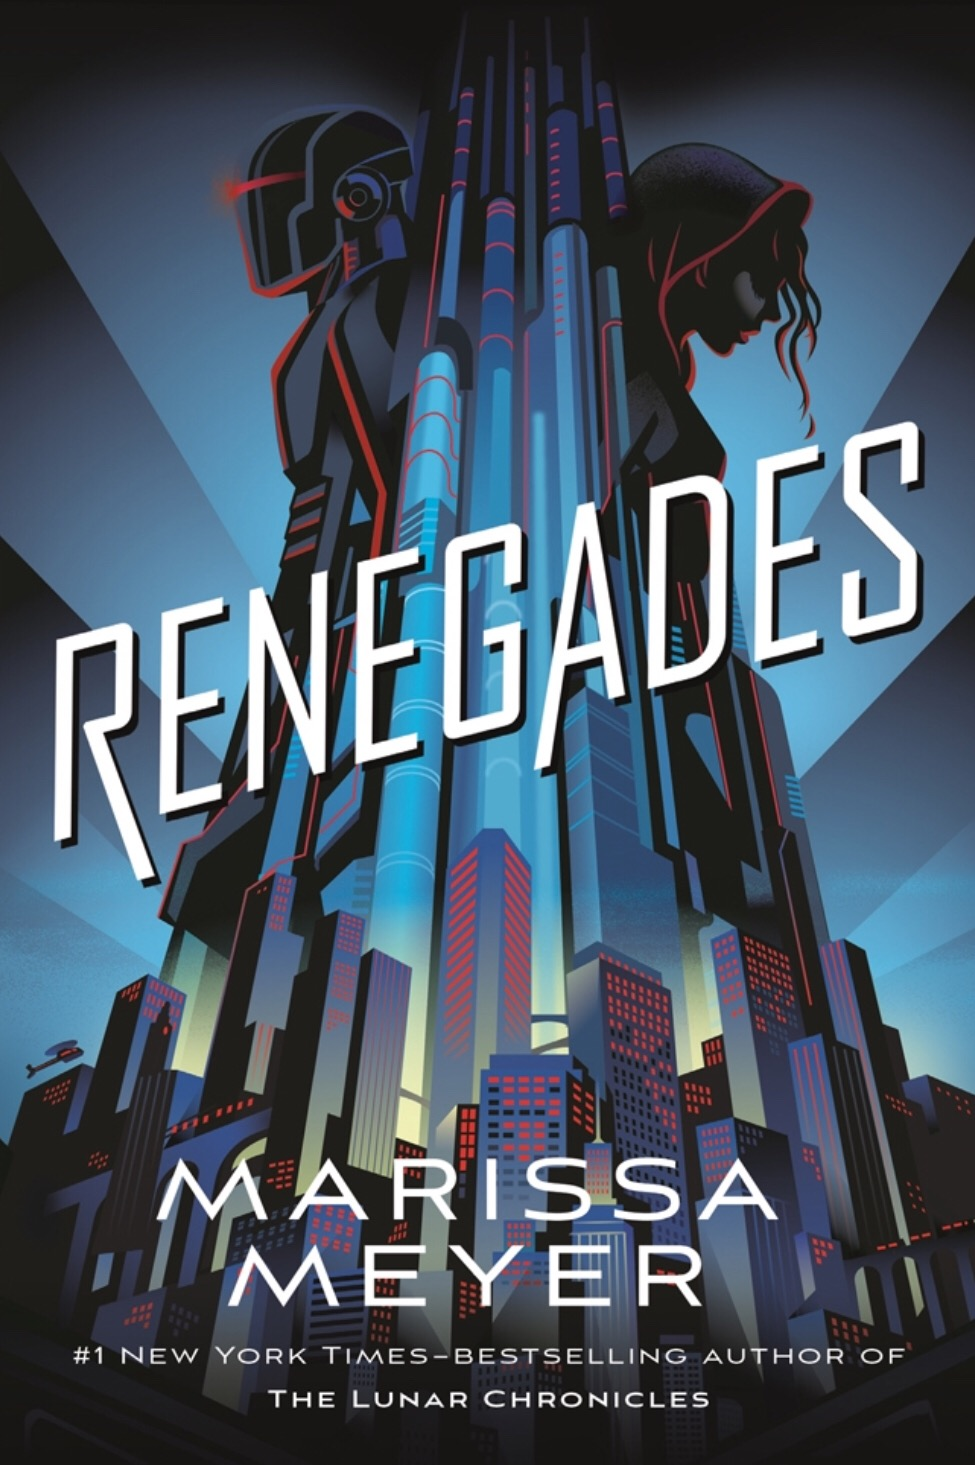 Renegades - By Marissa MeyerMy rating: 4 stars   Pages:556What made me pick it up: I love a good superhero story, especially a villain backstoryFormat: eBook   Source: BorrowBox2018 challenge/s: Goodreads 2018 Reading Challenge; AusYA Blogger Challenge 2018